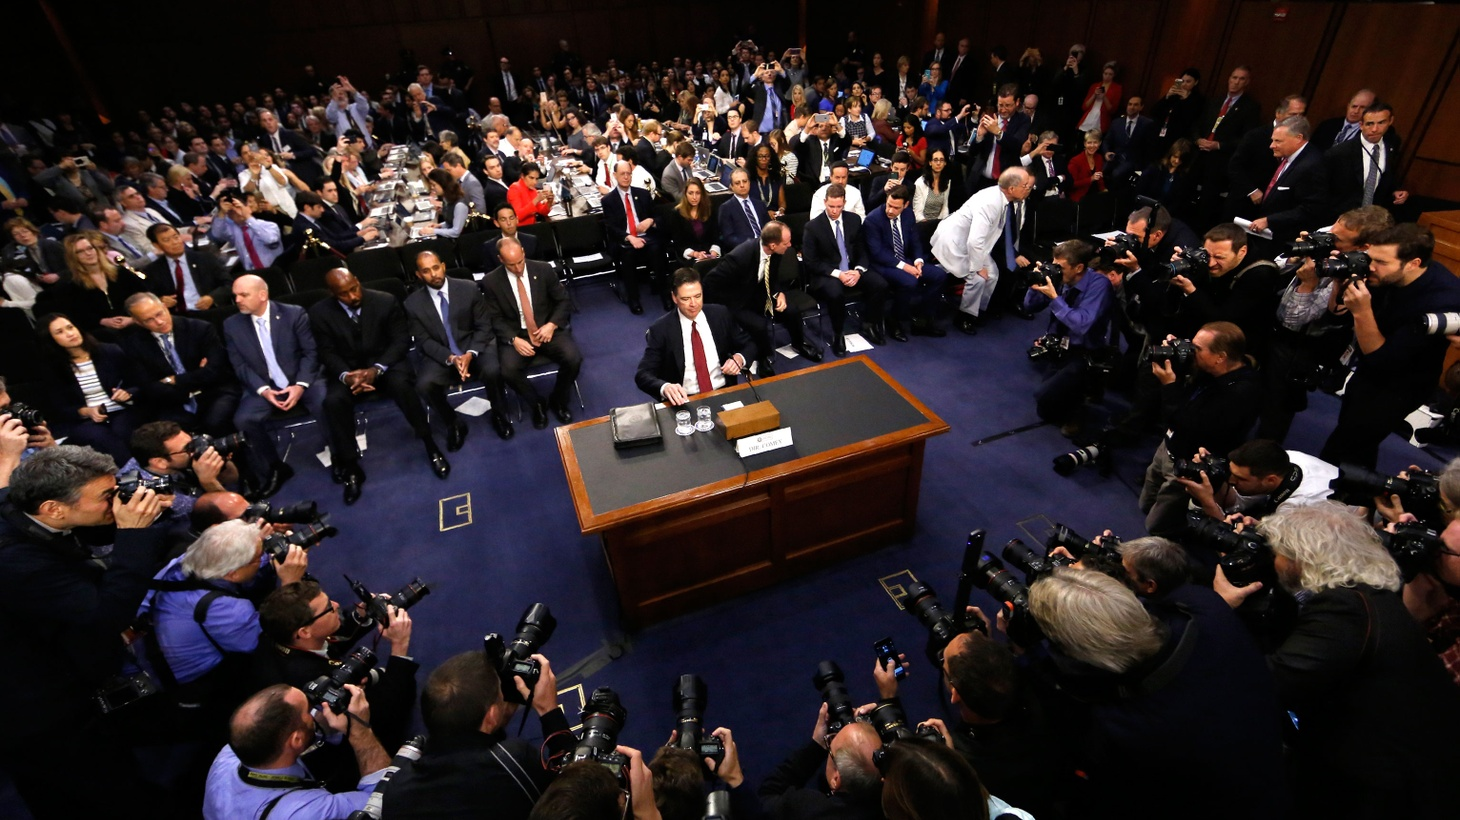 """Today, former FBI Director James Comey came close to calling the President who fired him a liar. The White House denied the claim and called it insulting, but Republican Senators did not challenge Comey's truthfulness. Many questions remain: did the President try to obstruct a federal investigation? Later, we'll go behind the """"velvet rope"""" for a look at 5-Star health care for the richest Americans."""